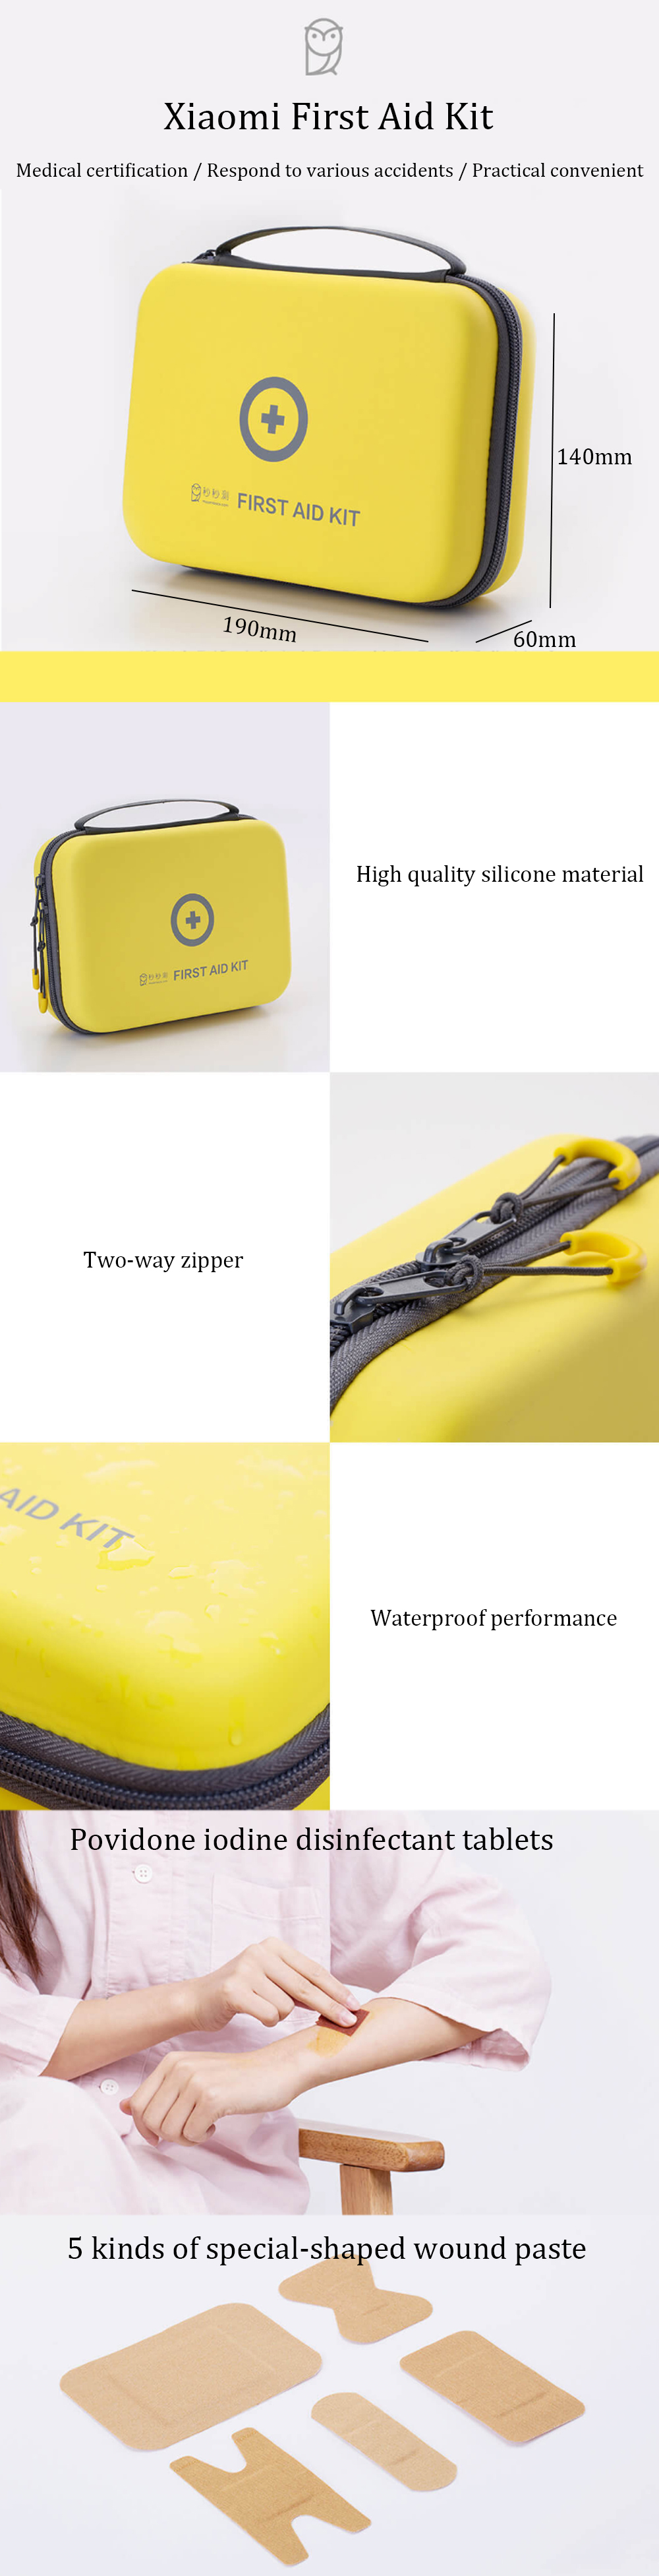 Xiaomi EDC First Aid Kit Portable Survival Bag Emergency Medical Rescue Pack Outdoor Travel